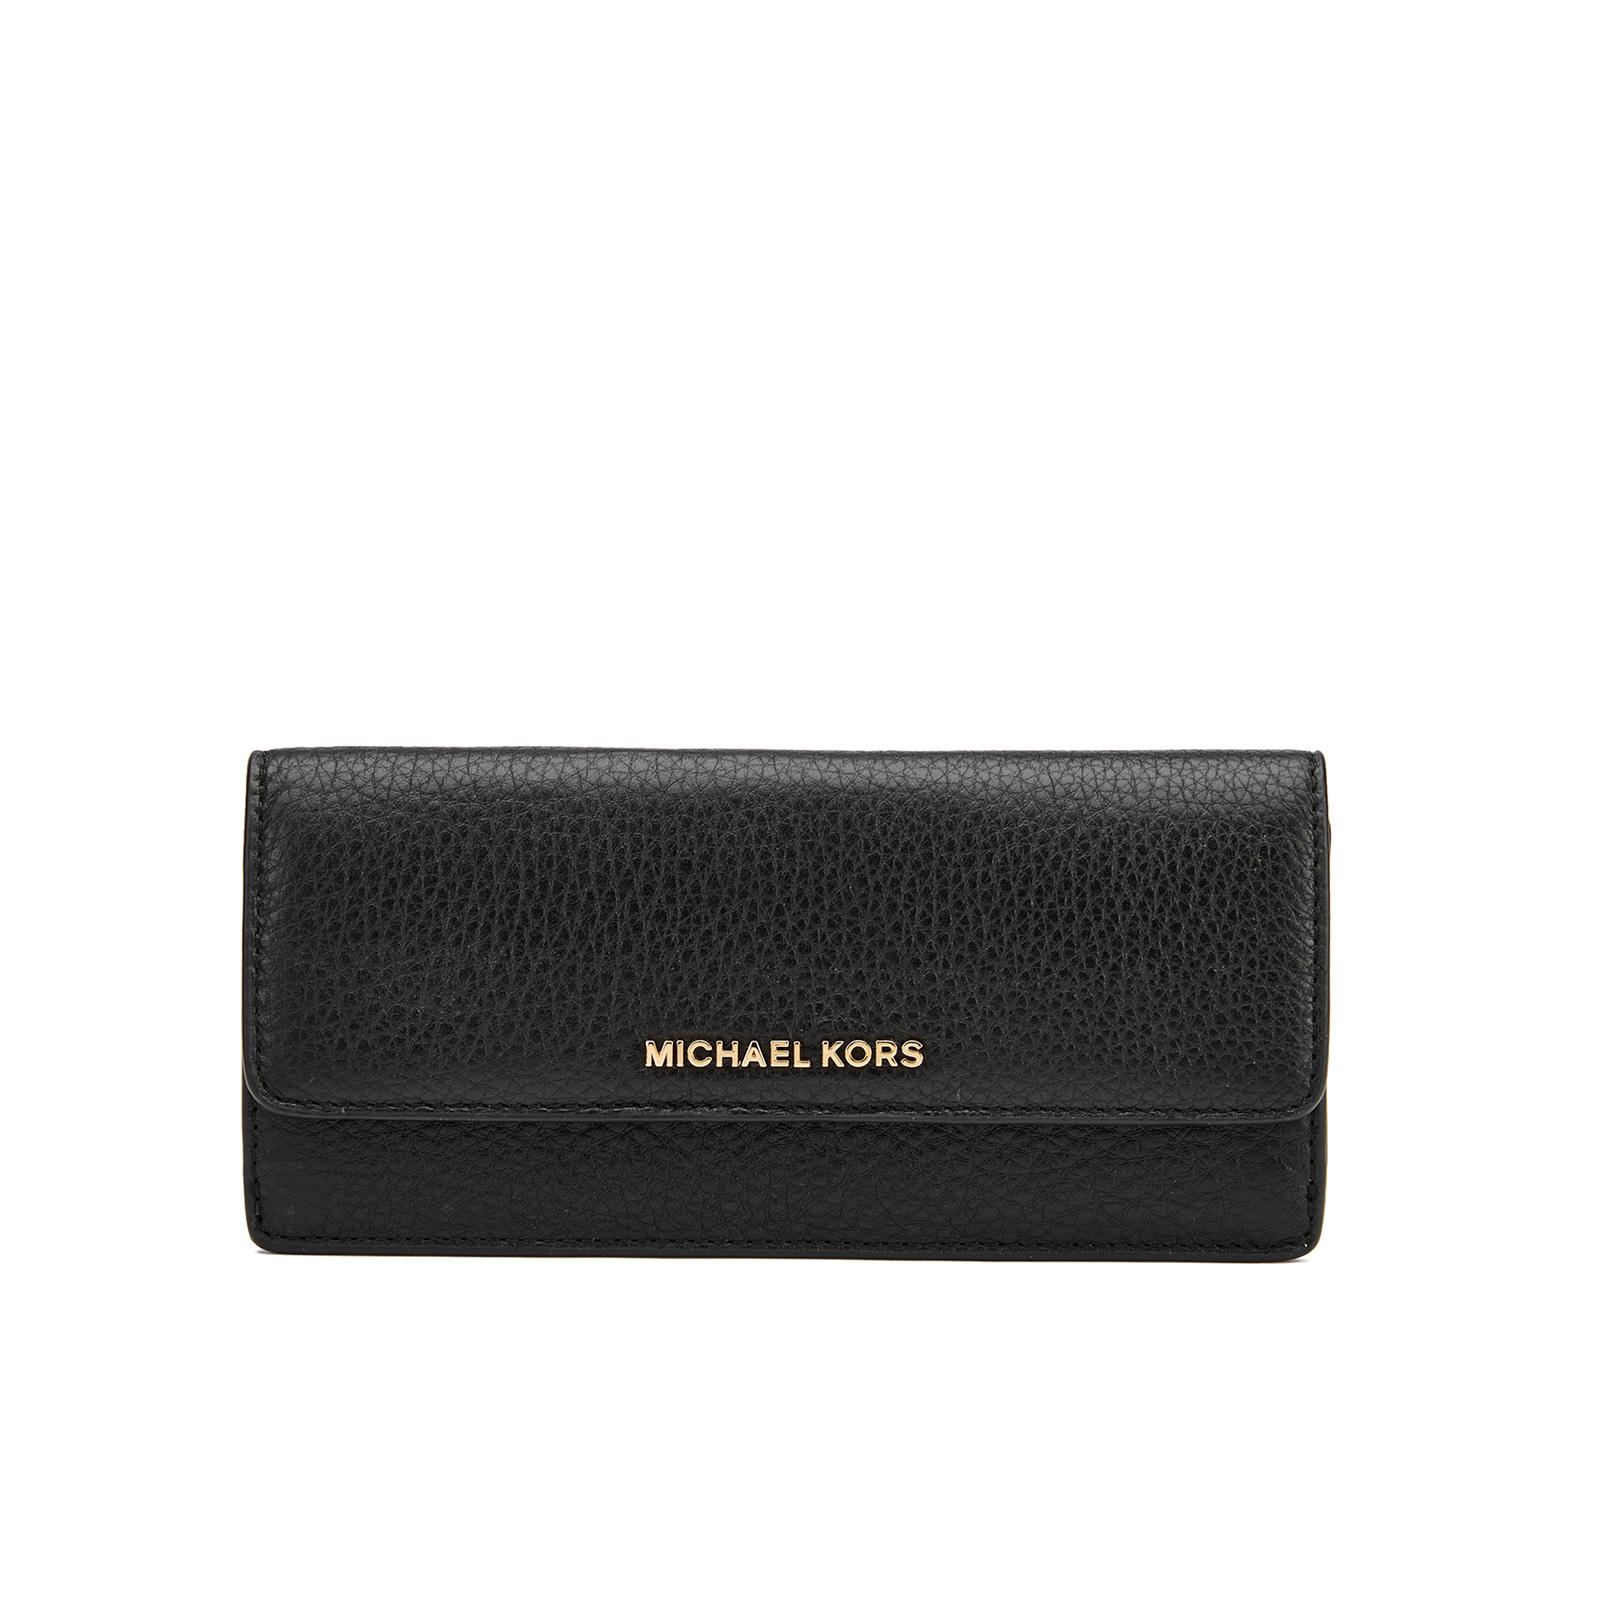 7caf2973c698 MICHAEL MICHAEL KORS Women s Bedford Large Flat Wallet - Black ...